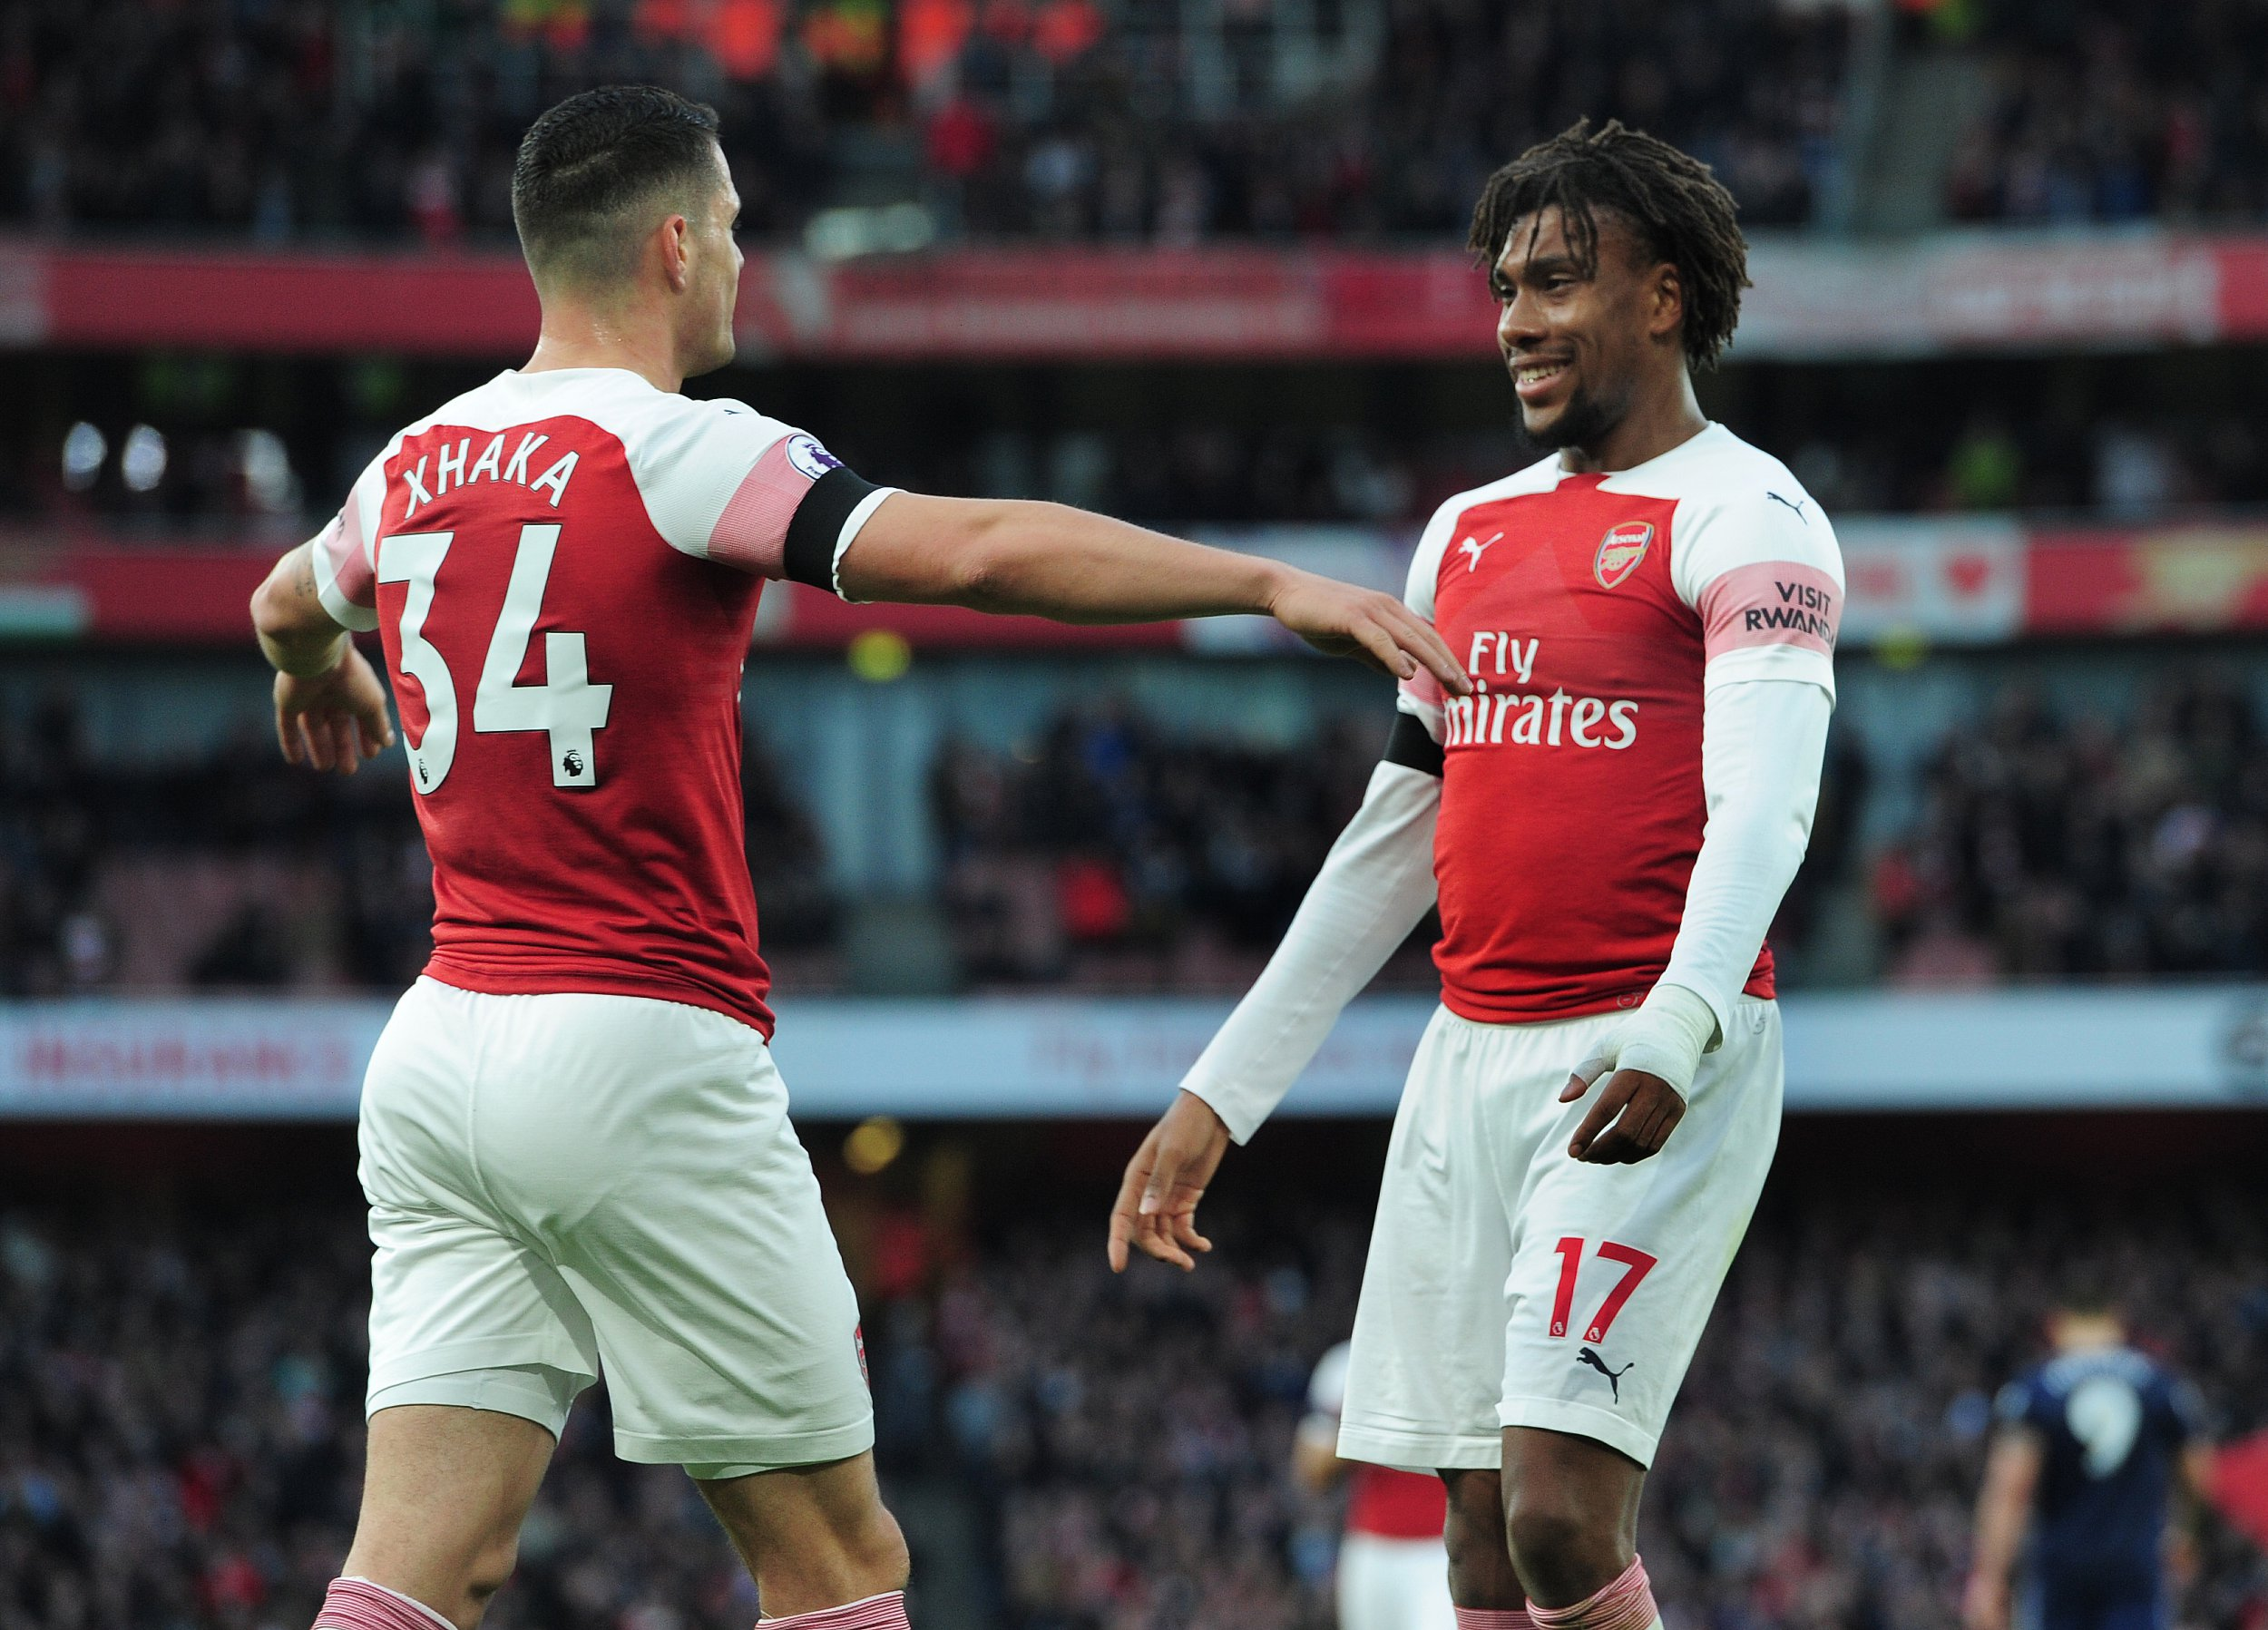 Football - 2018 /2019 Premier League - Arsenal vs Fulham ??? at the Emirates. Granit Xhaka of Arsenal celebrates scoring his first half goal with Alex Iwobi of Fulham Credit: COLORSPORT/ANDREW COWIE